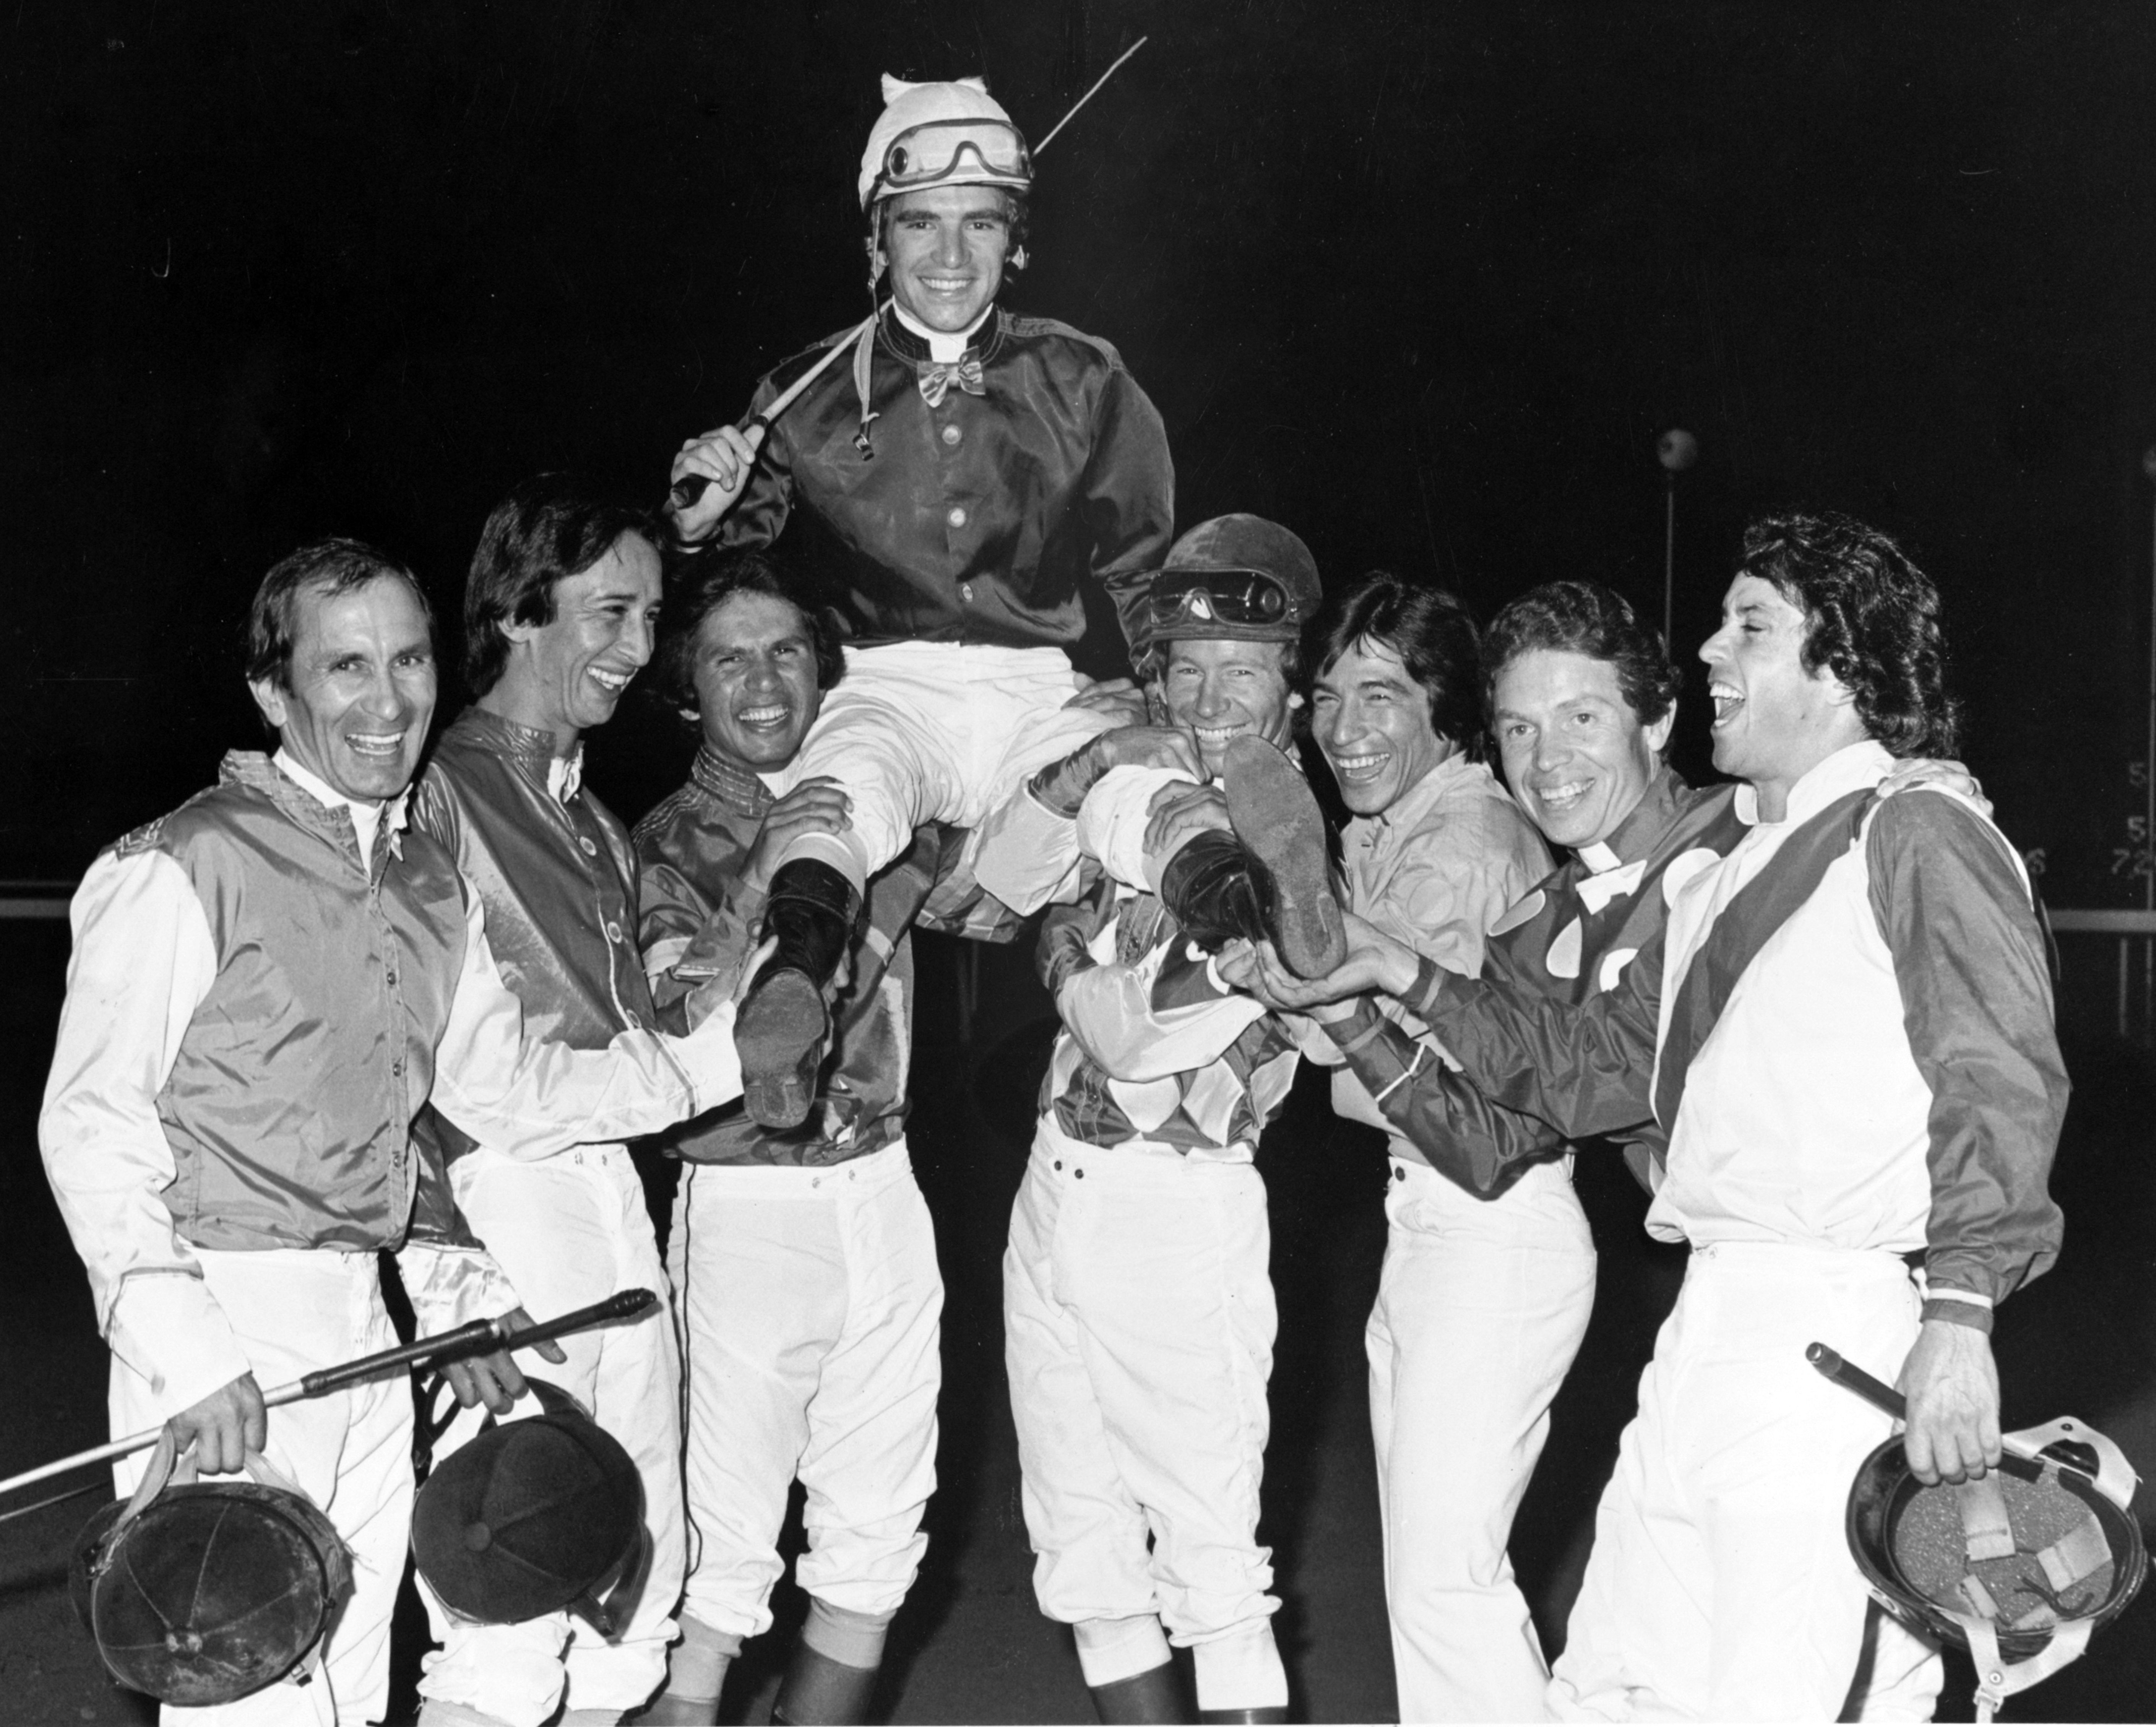 Darrel McHargue being lifted up in celebration by the Hollywood Park jockey colony after his second consecutive Moonlight Derby win (Keeneland Library Thoroughbred Times Collection)